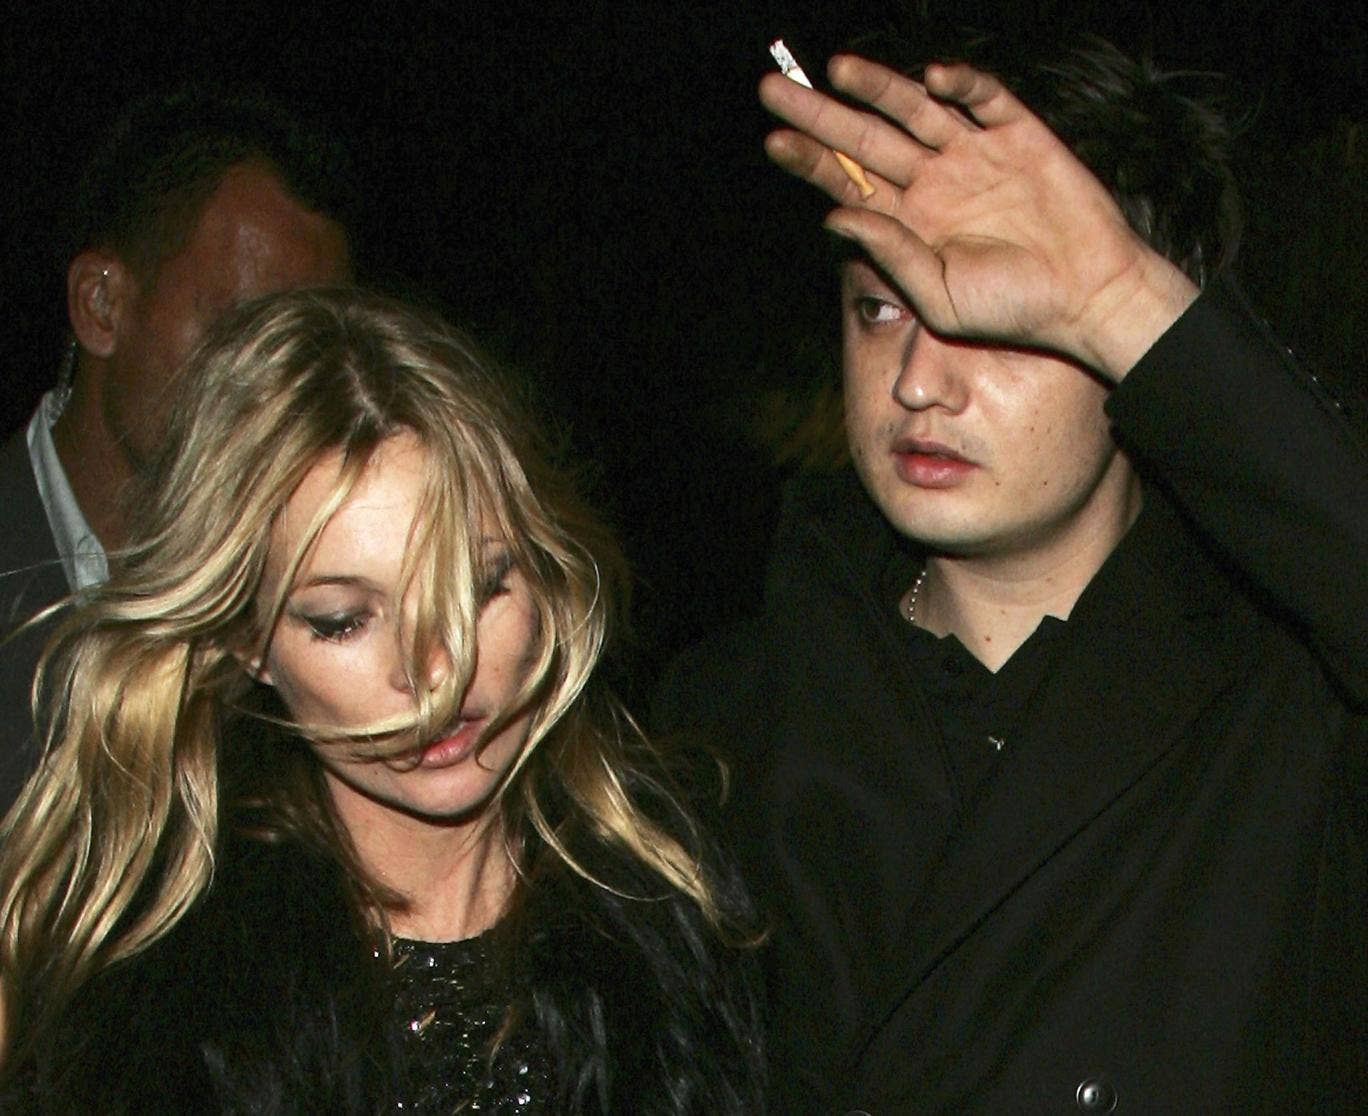 Kate Moss and Pete Doherty when they were having a relationship in 2006